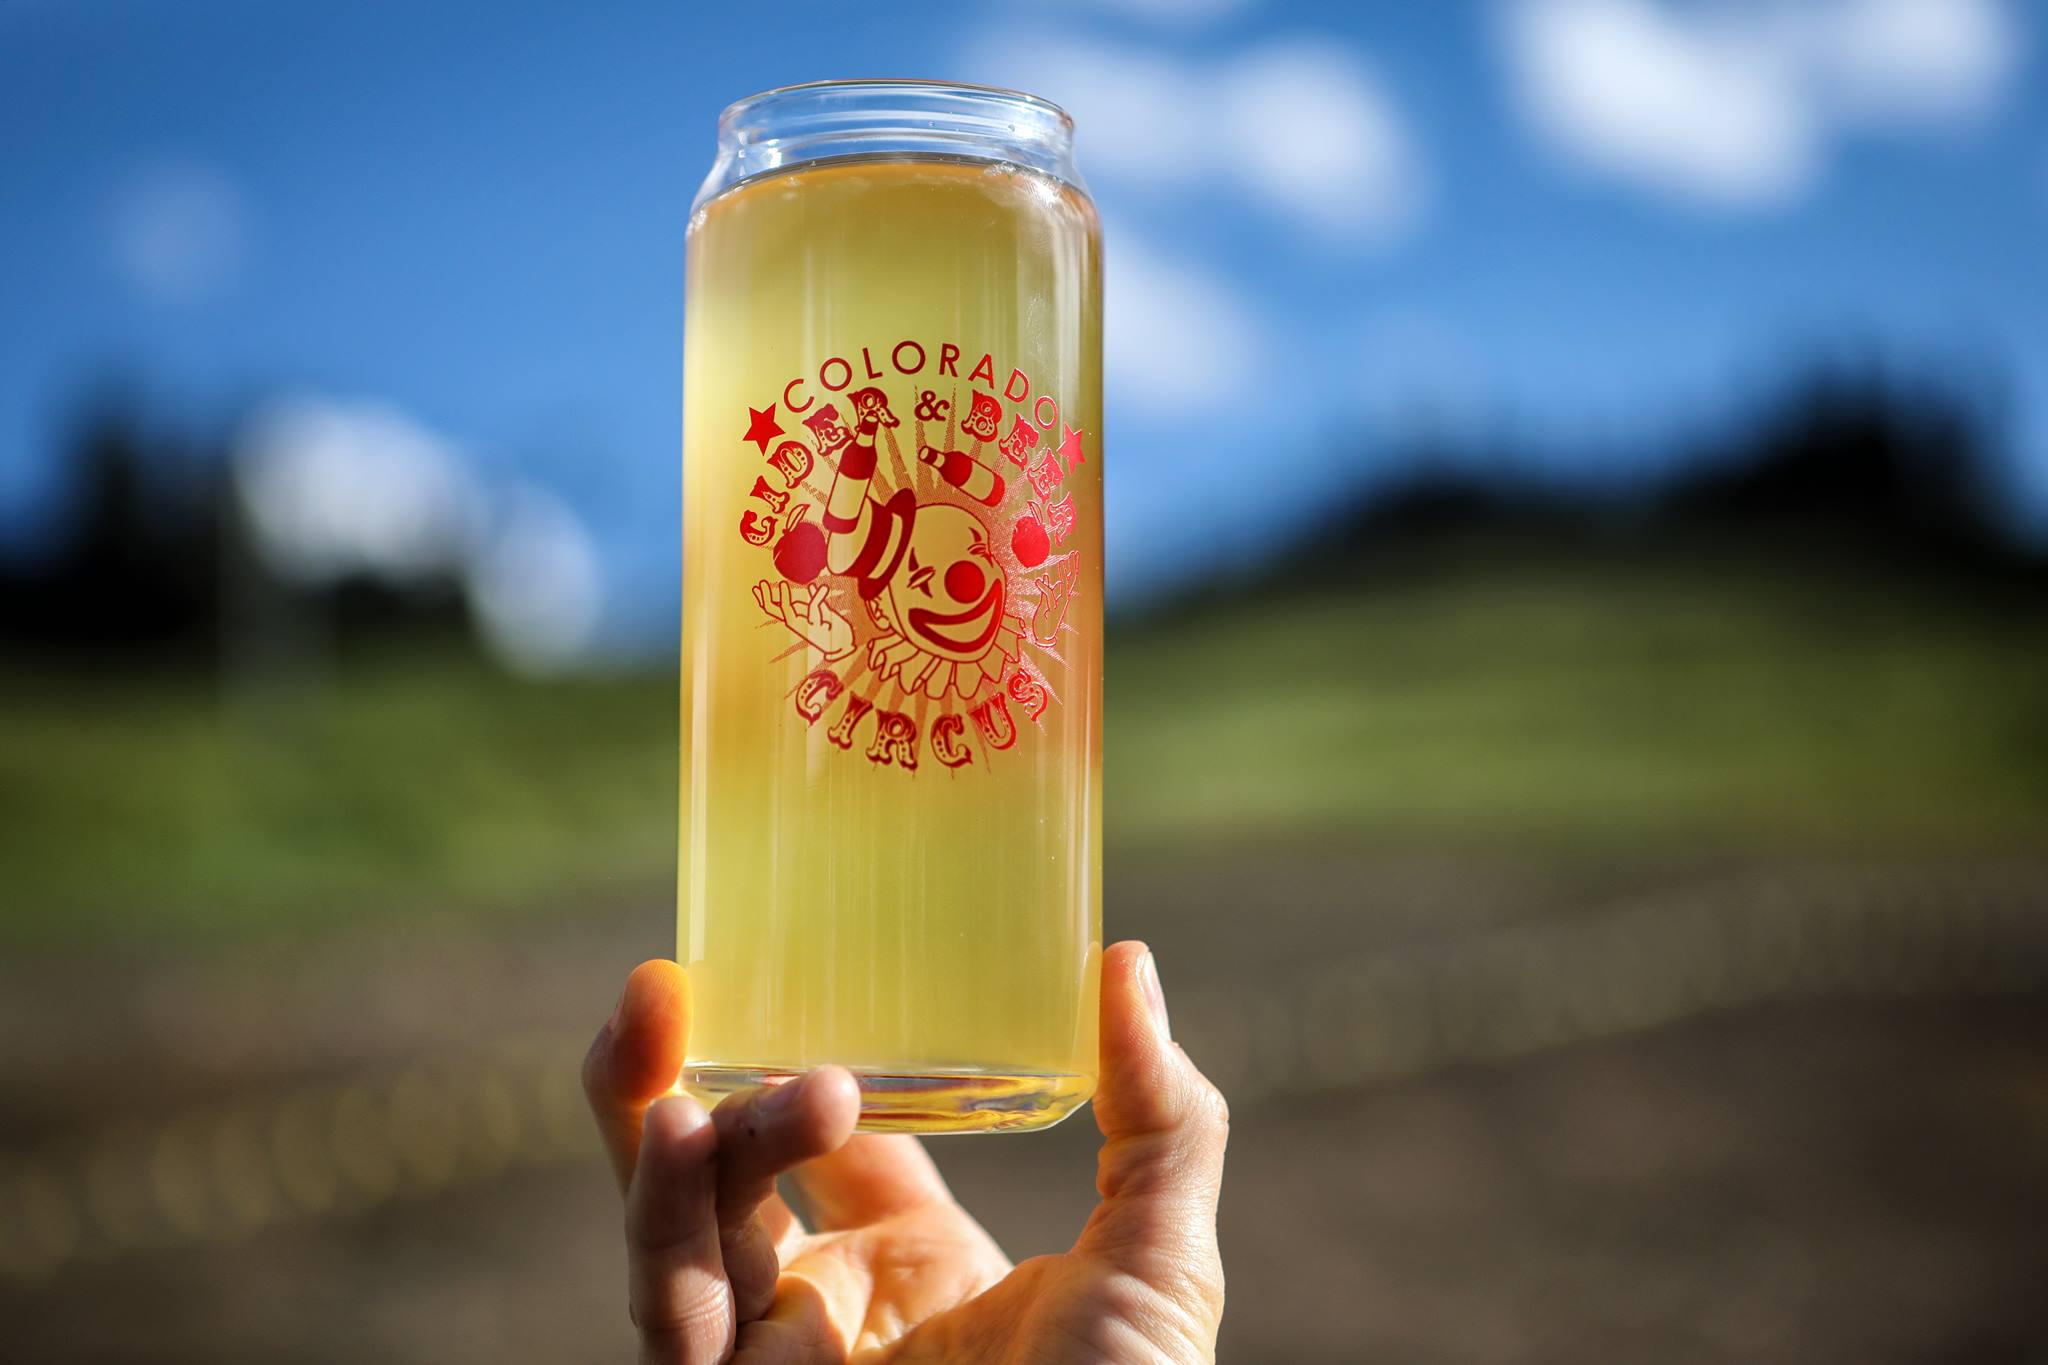 Colorado Cider and Beer Circus at Copper Mountain